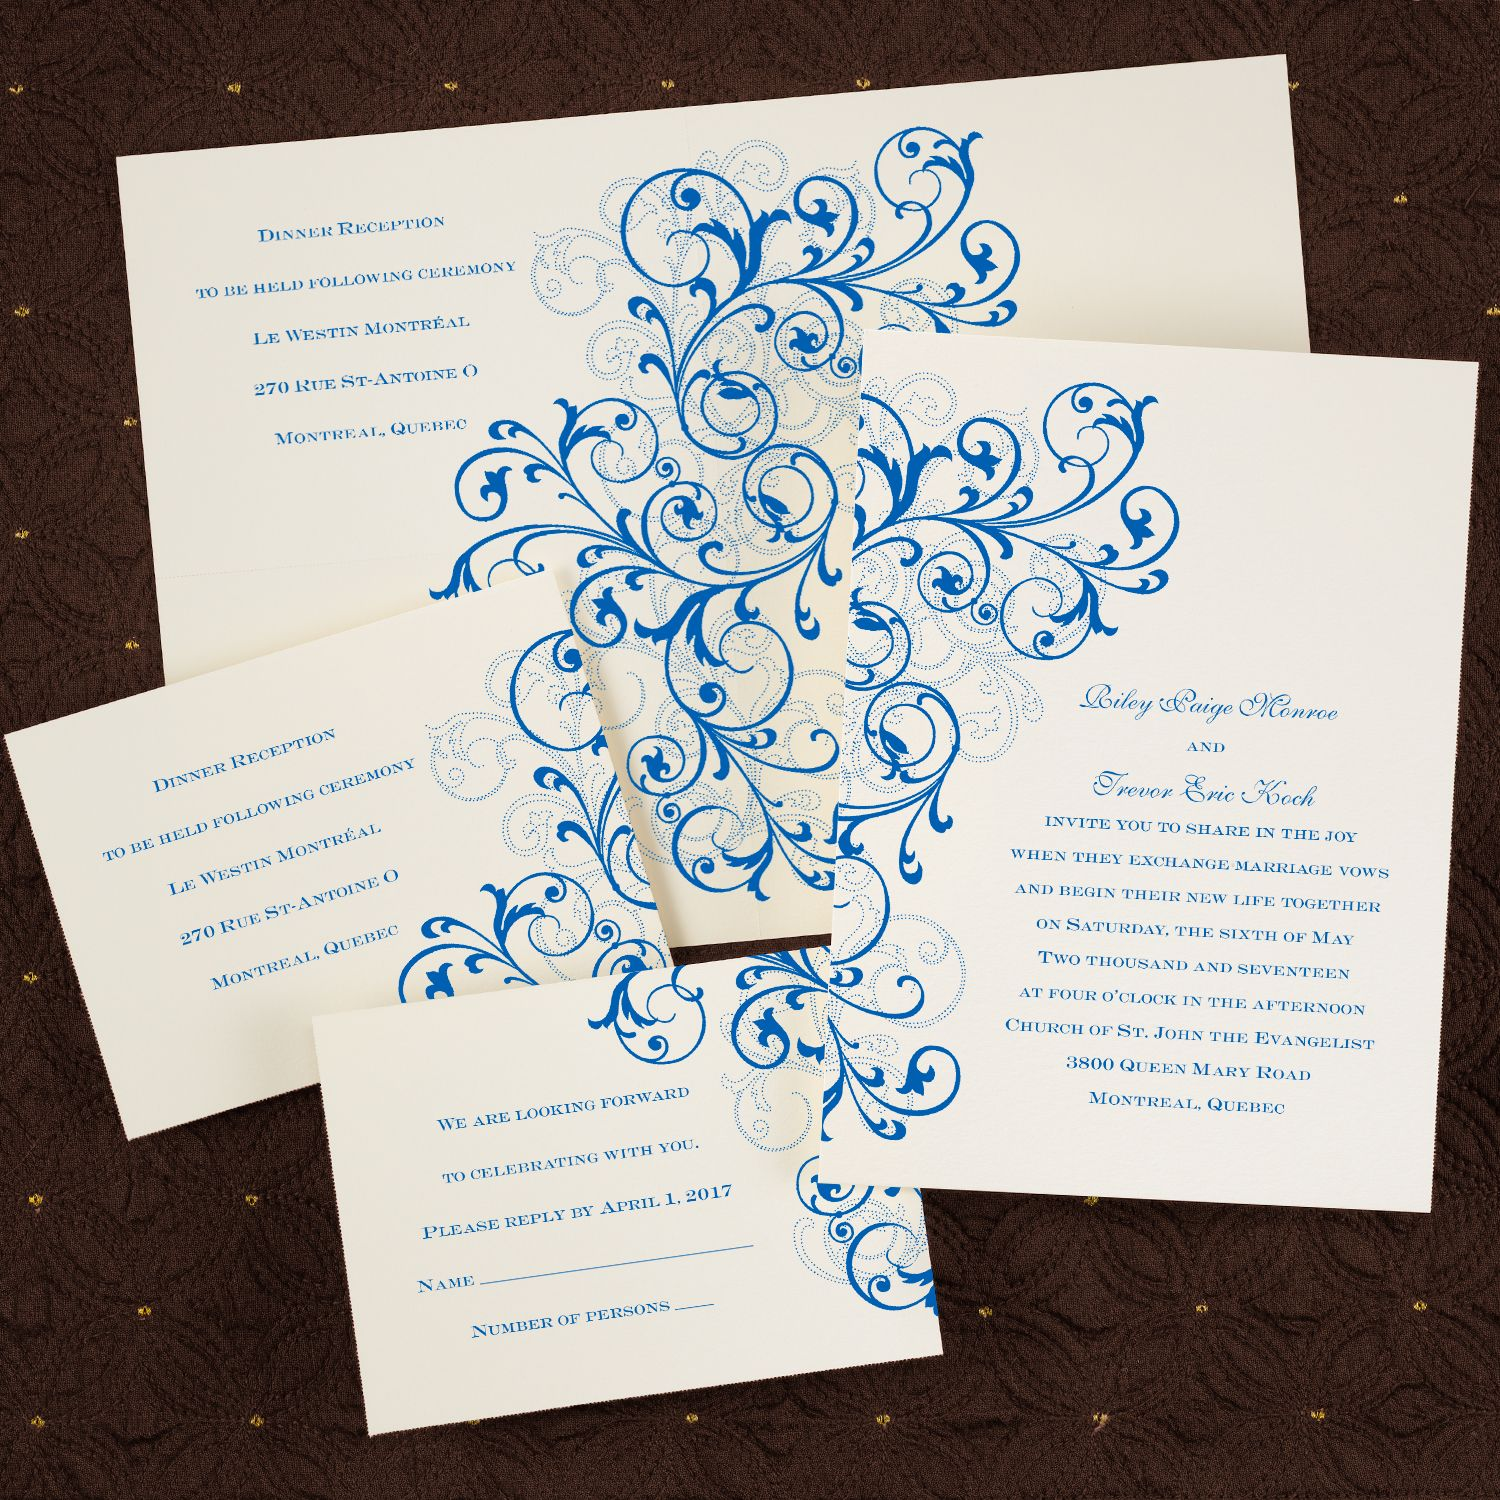 Affordable Style Wedding Invitations from My Sweet Wedding & Event ...